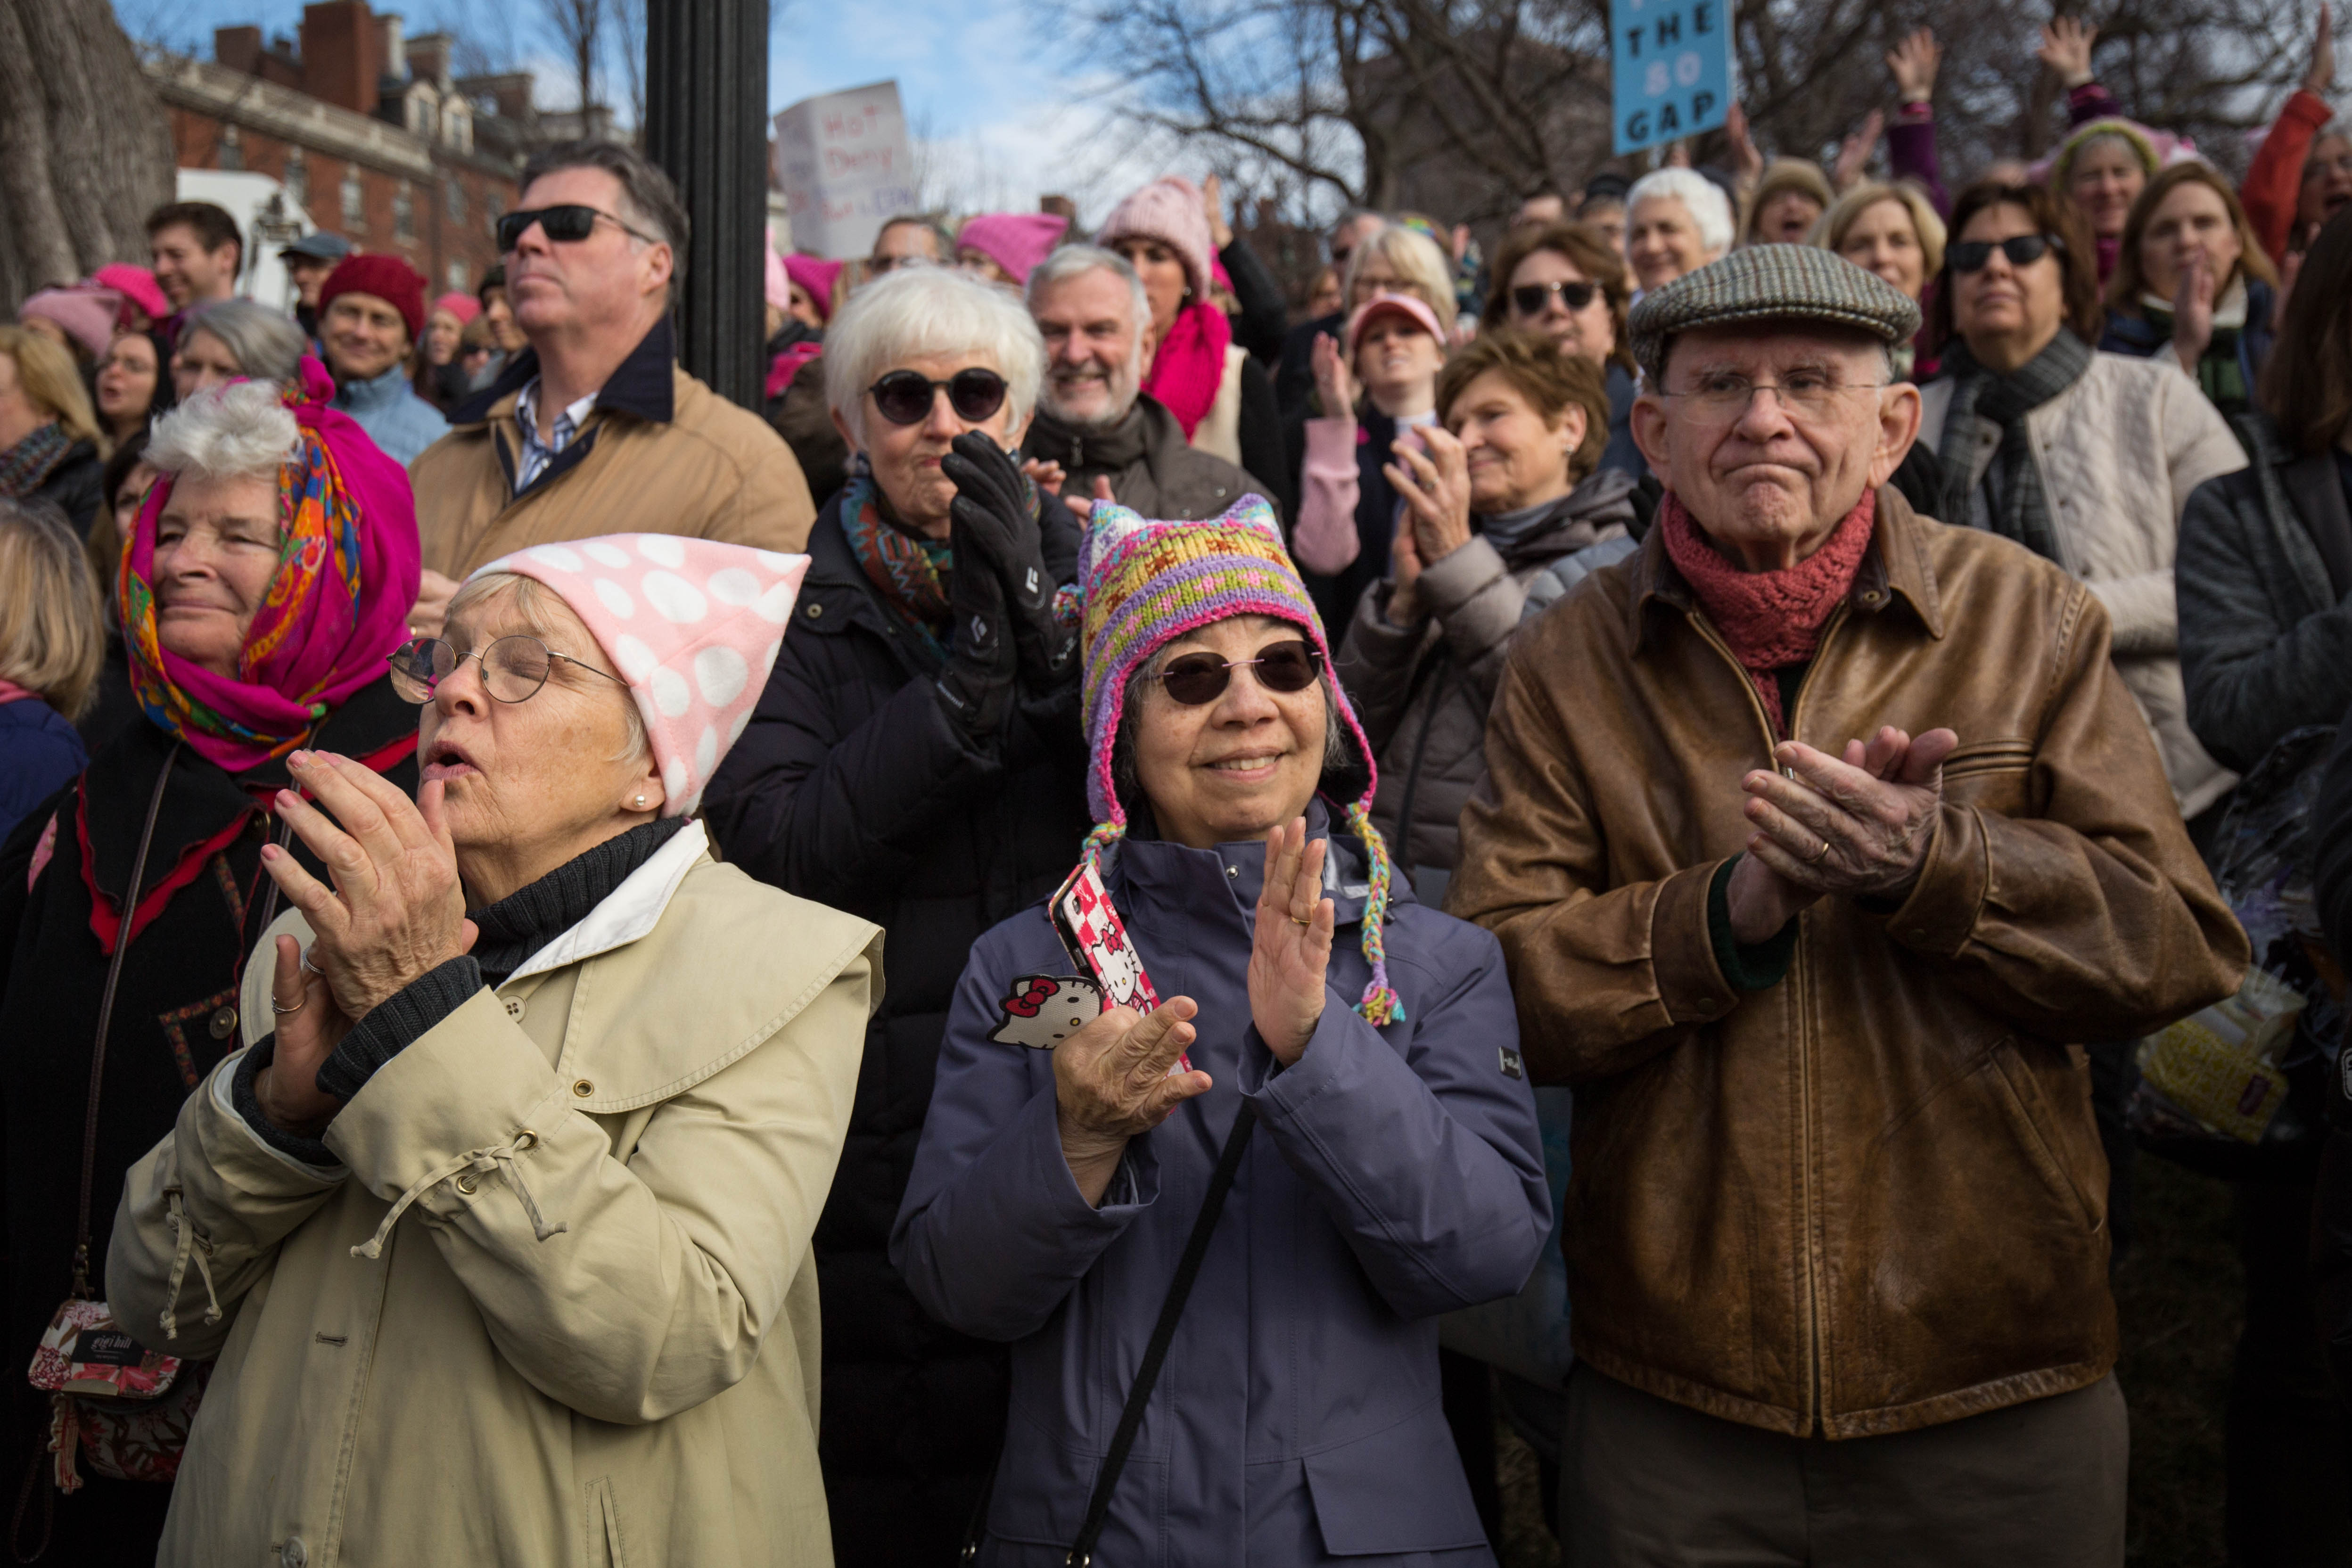 Participants react to a speech at the Boston Women's March on Jan. 21, 2017. (Photo by Alastair Pike)